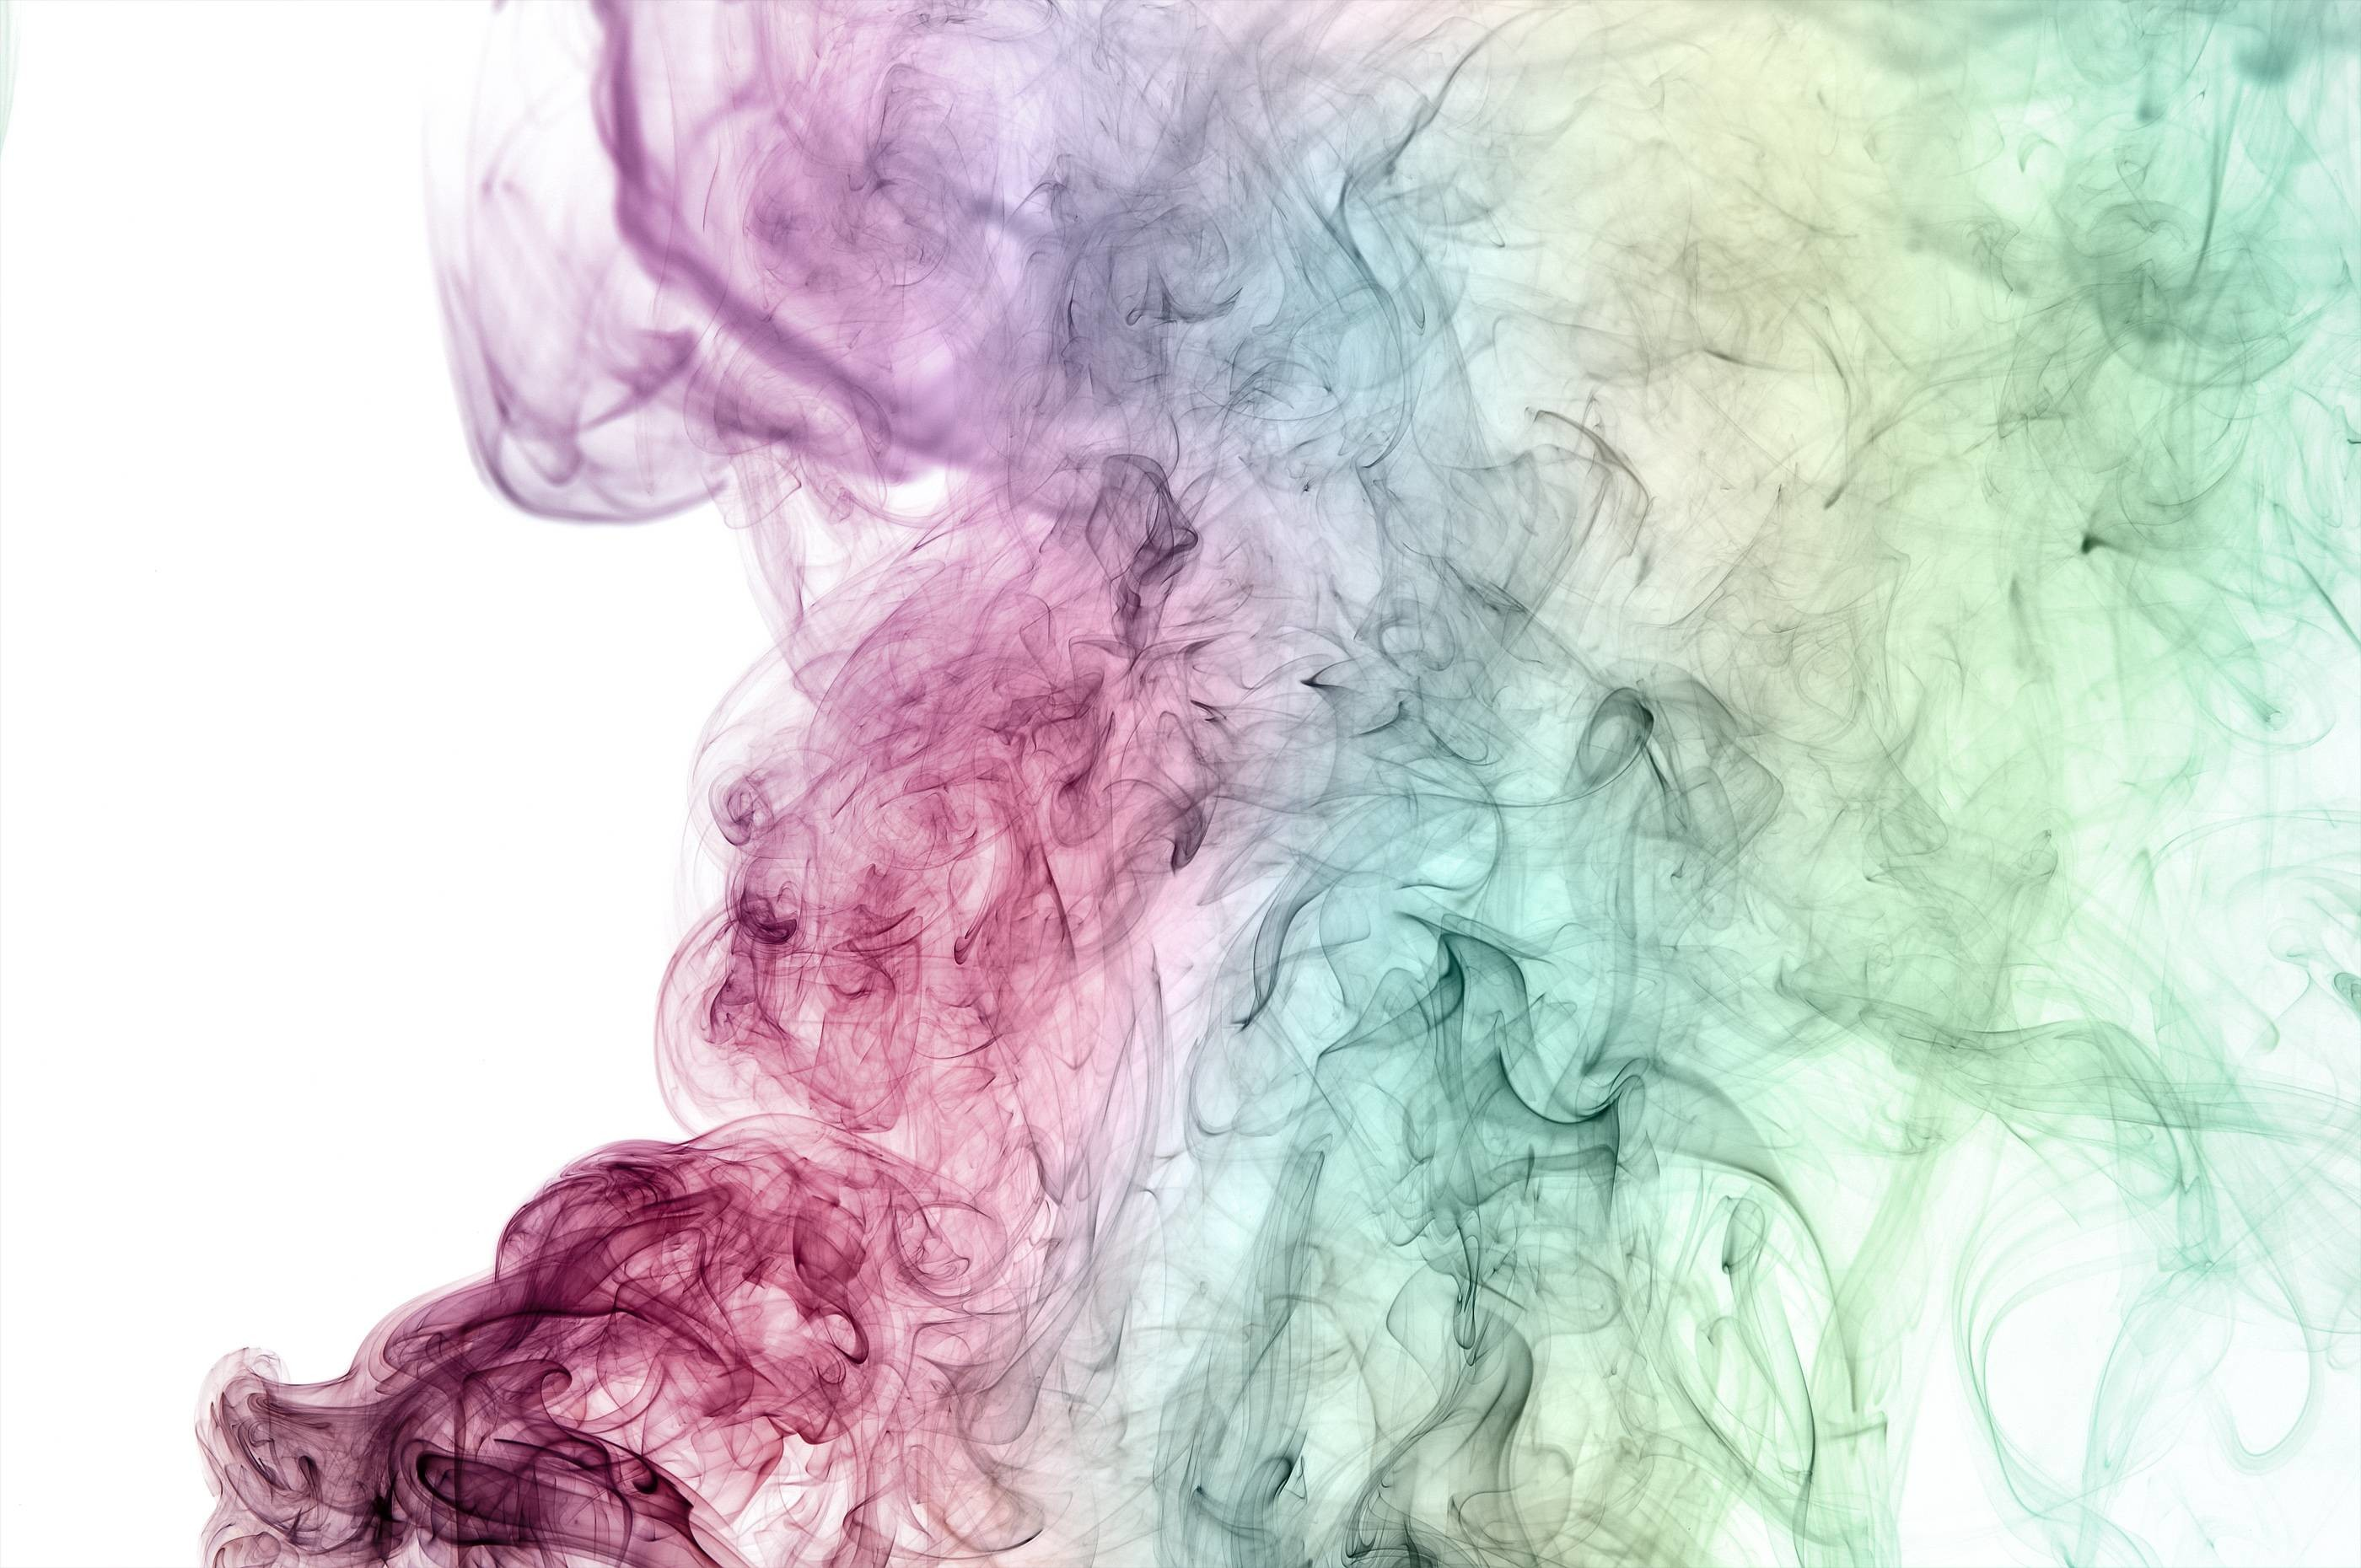 Trippy Smoke Backgrounds Tumblr (67+ images)